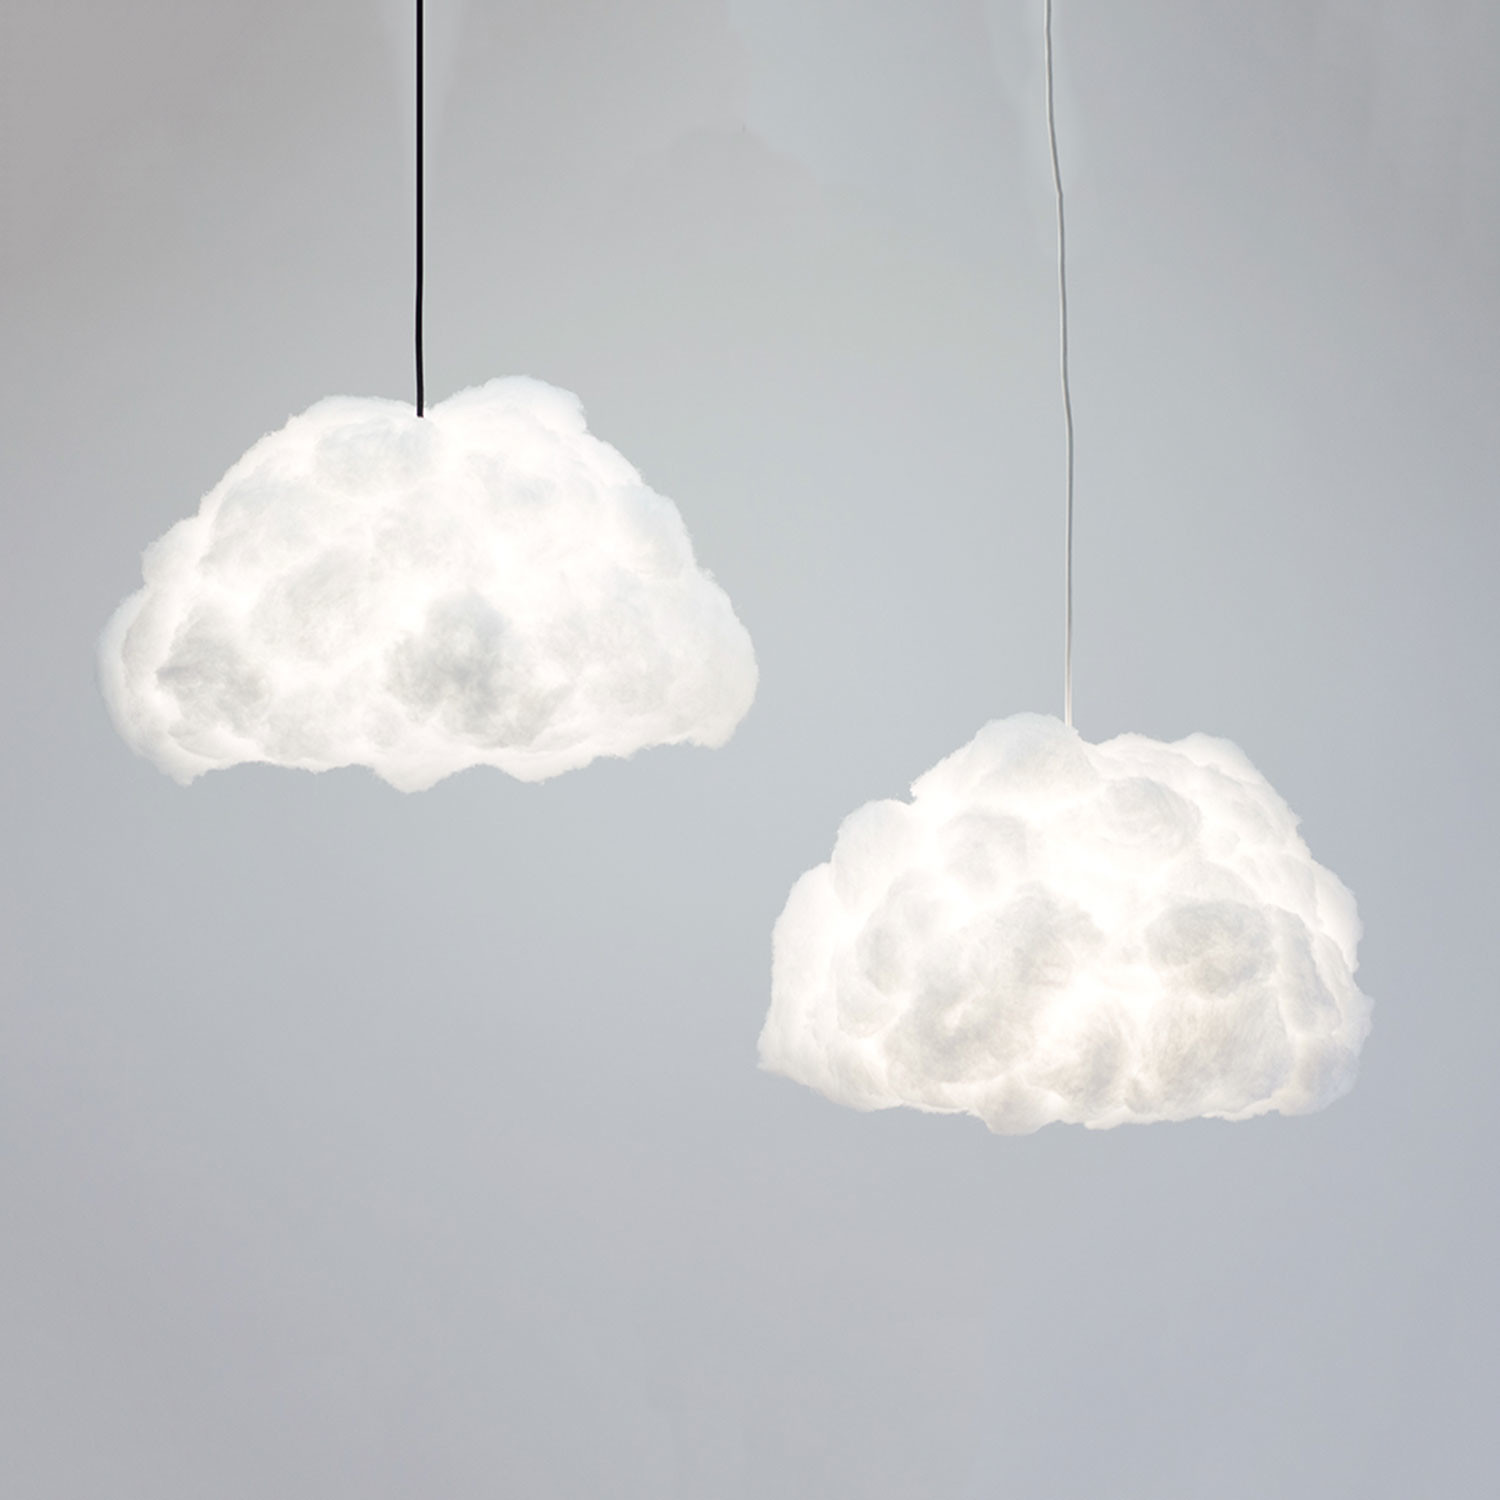 clouds light led bulb products in design designer fixture fancy bulbs relamp hanging patterned cloud ceiling hand printed